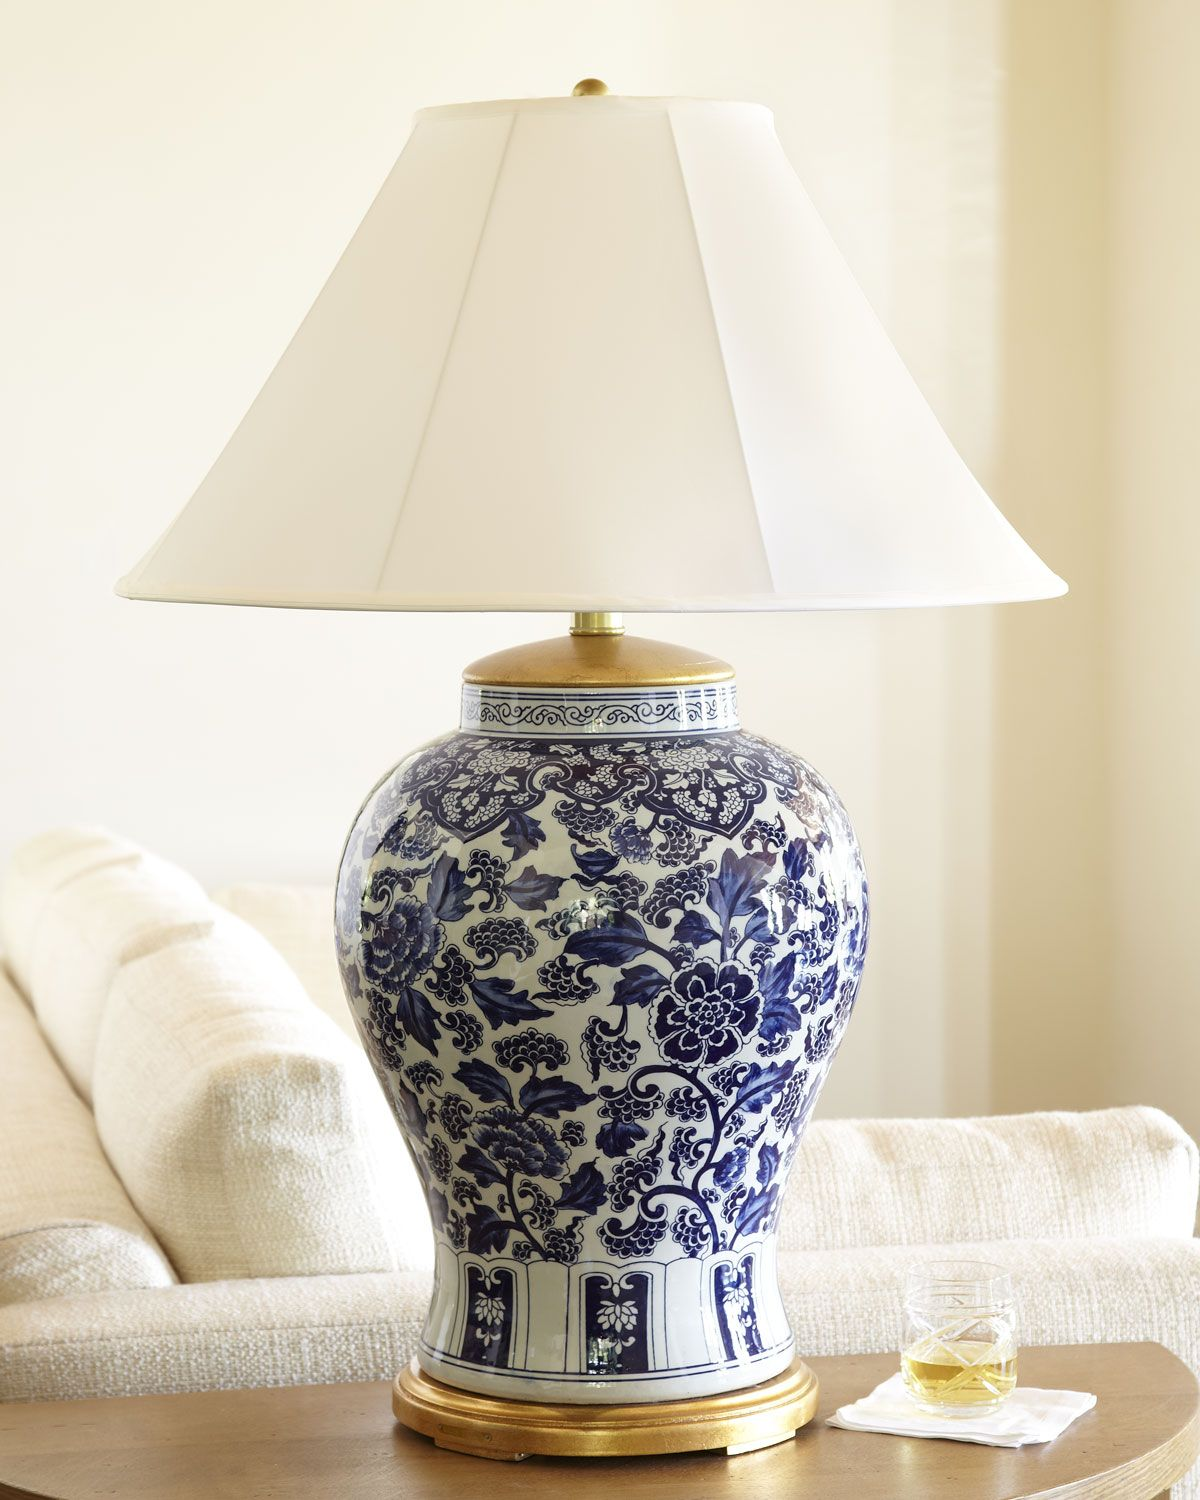 Visit Neimanmarcus For The Ralph Lauren Ginger Jar Table Lamp Hand Painted Oversized Porcelain And Br With White Silk Hardback Shade Has